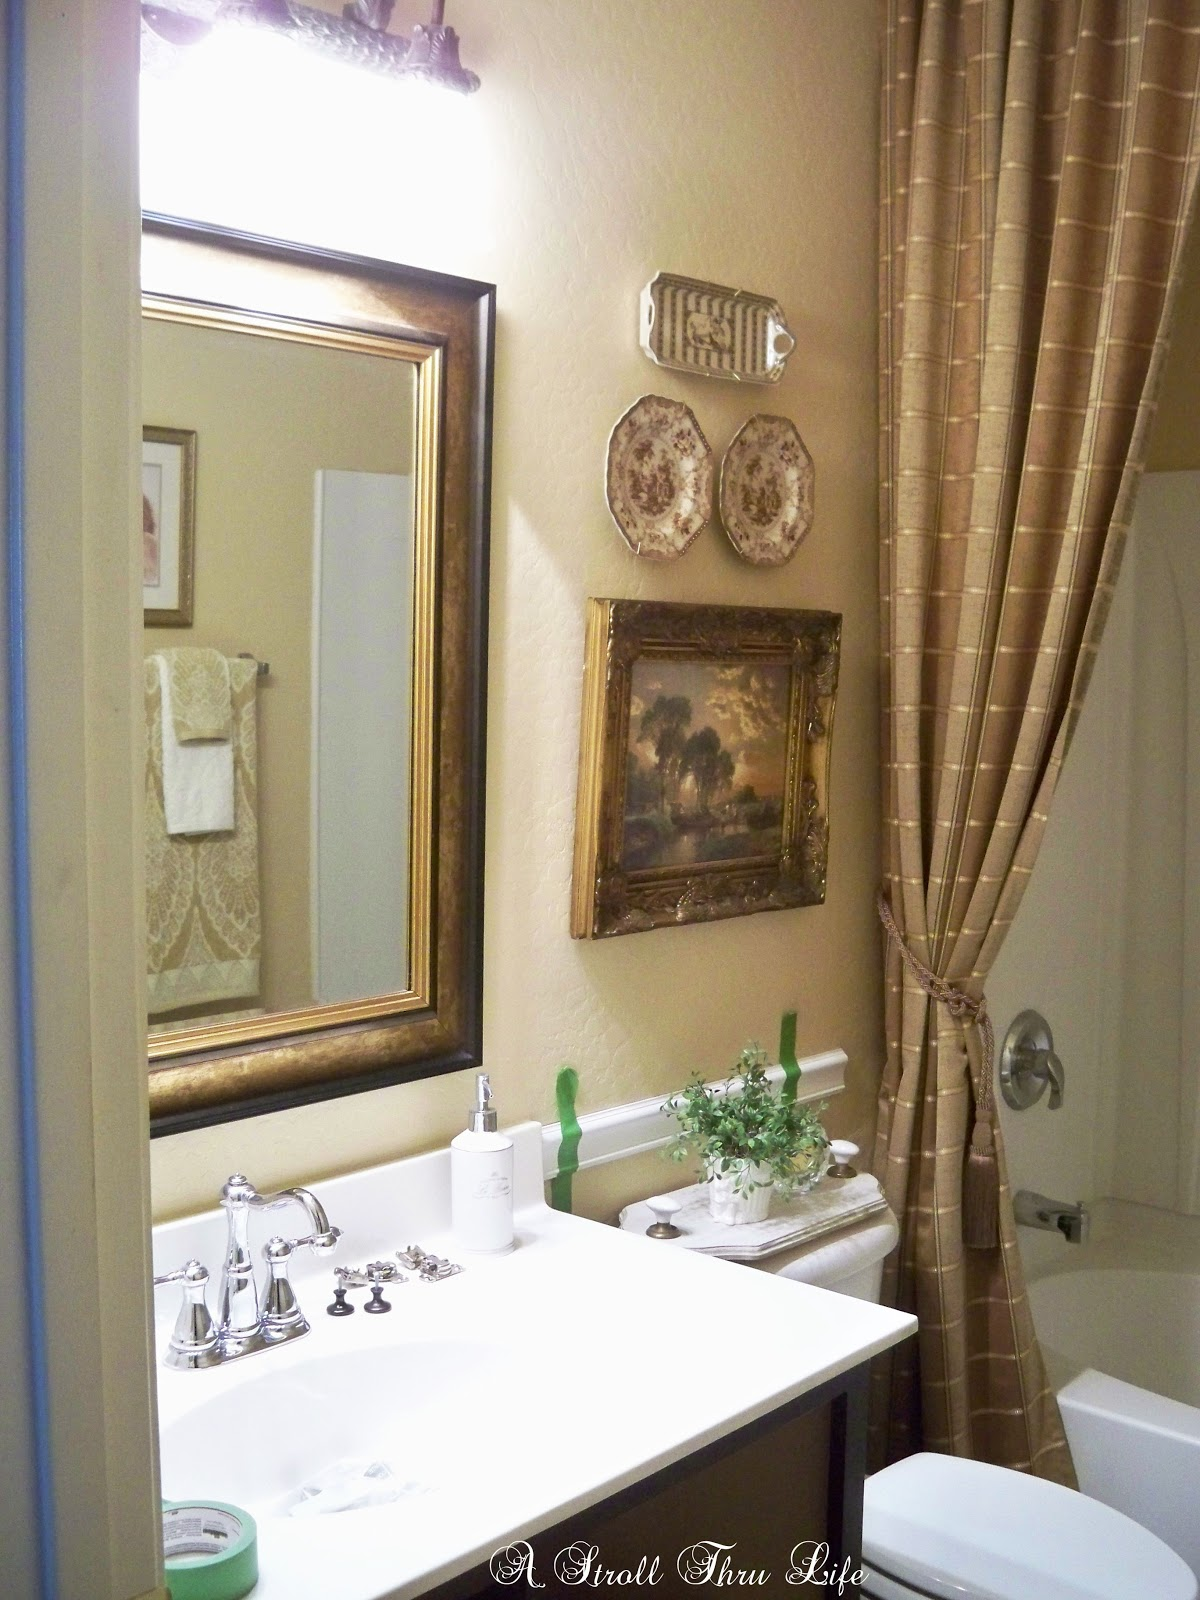 Chair Rail On Just One Wall Part - 29: A Stroll Thru Life: Hall Bathroom Makeover Update - Chair Rail U0026 Moldings